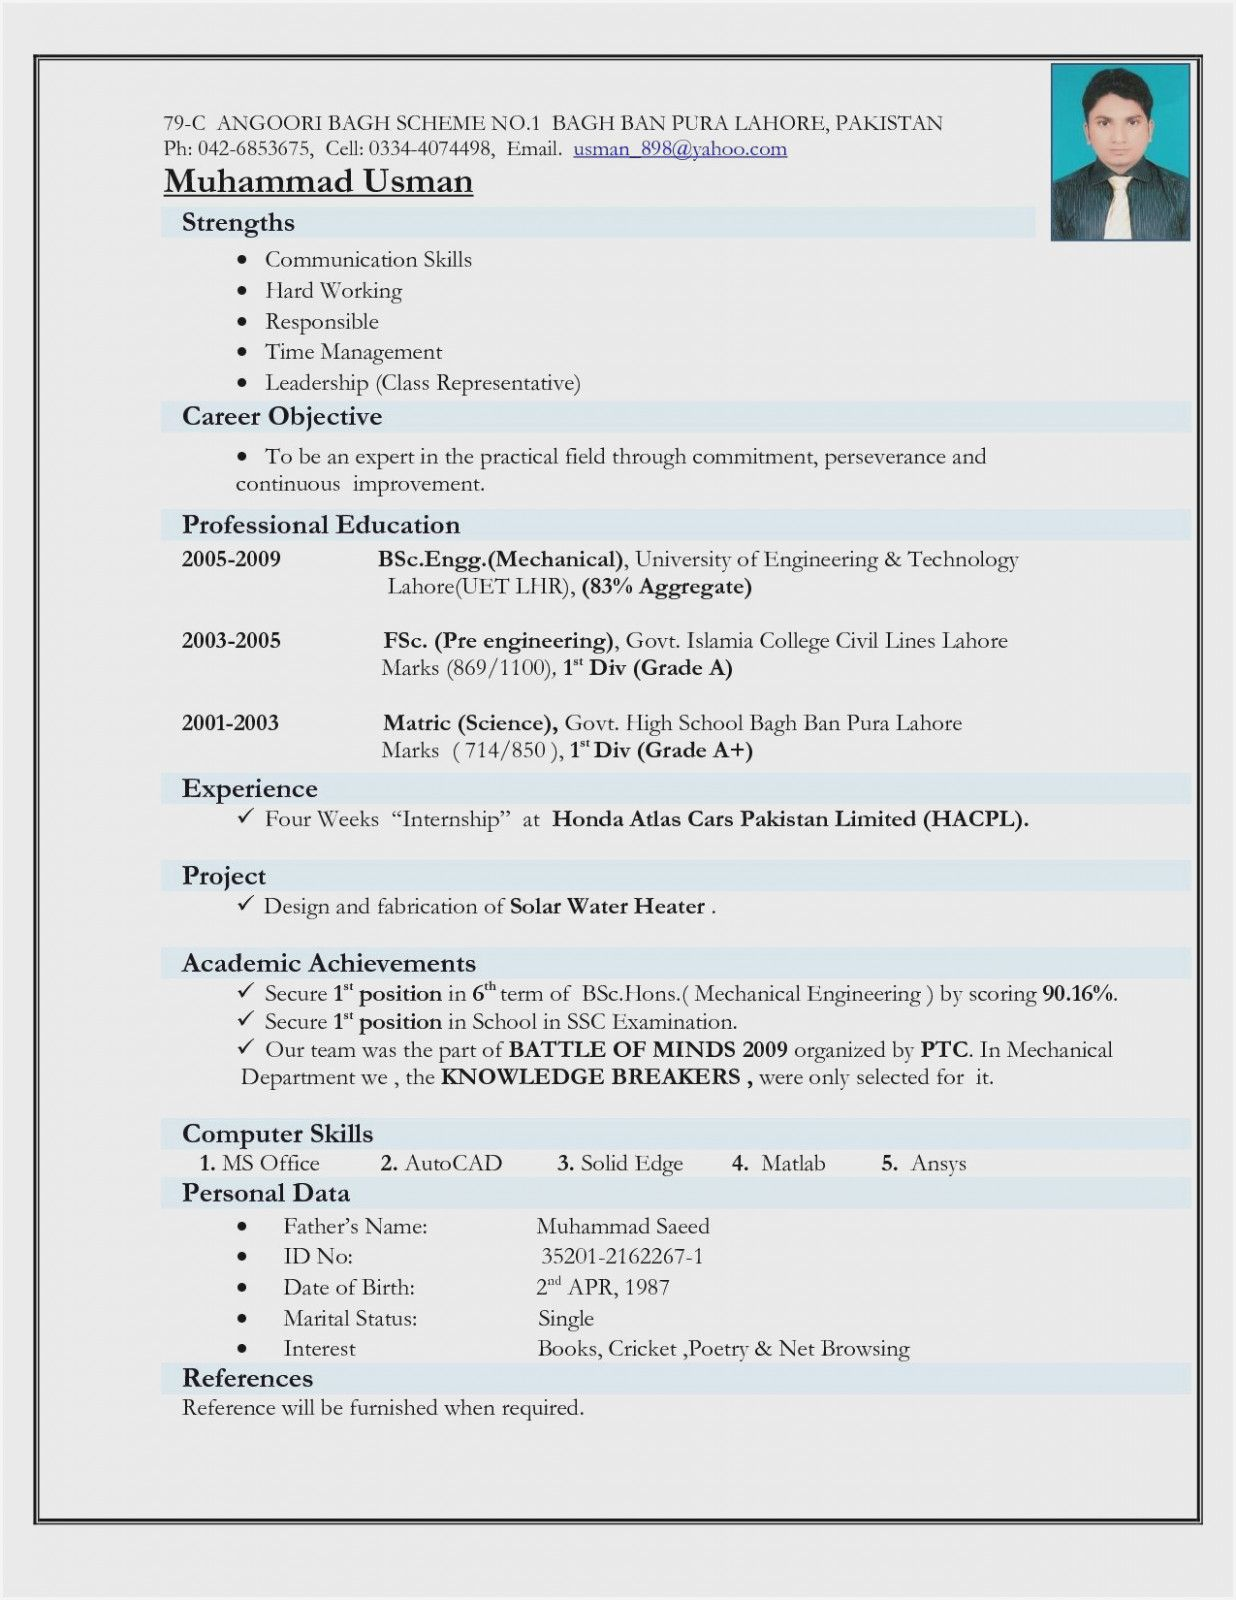 engineer resume template mechanical engineering format for freshers latest photo stylist Resume Latest Resume Format 2020 For Freshers